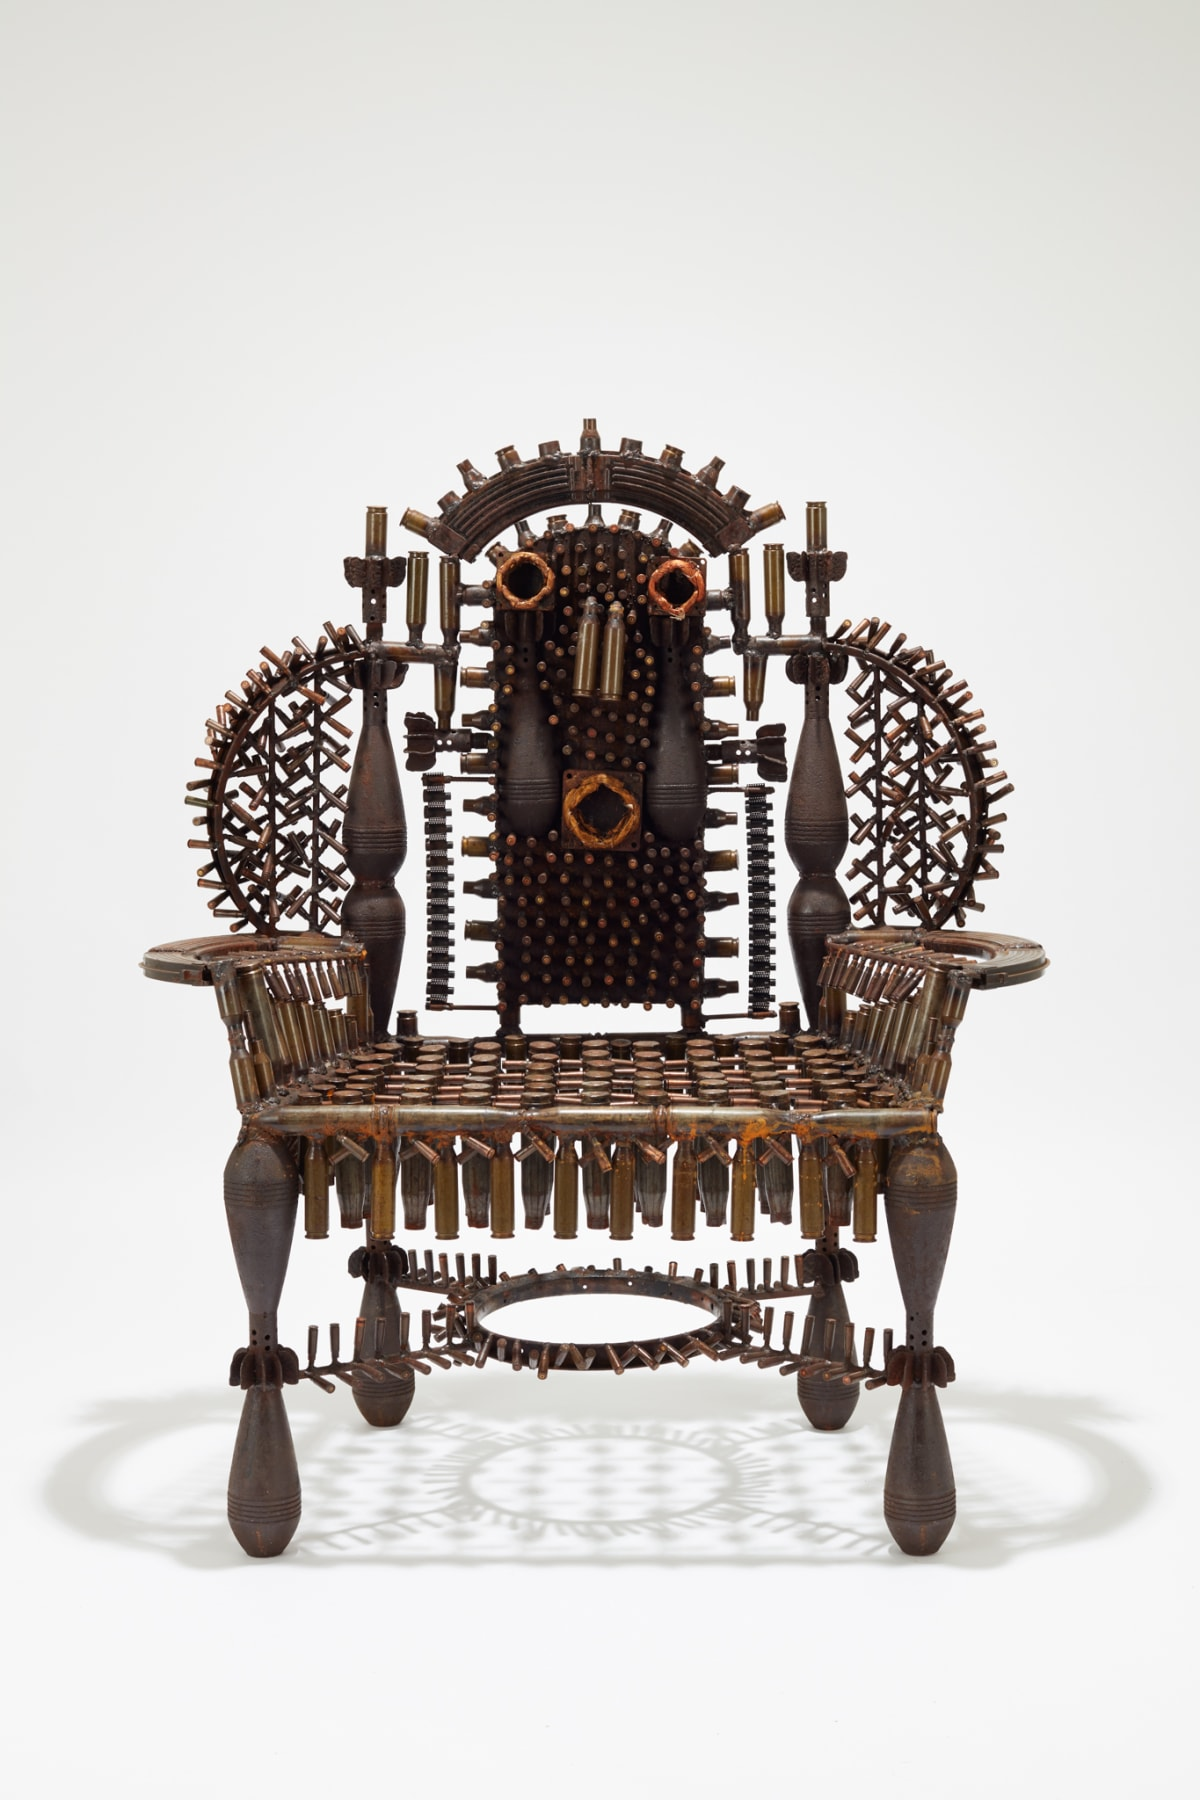 Goncalo Mabunda, The Throne of Languages, 2019